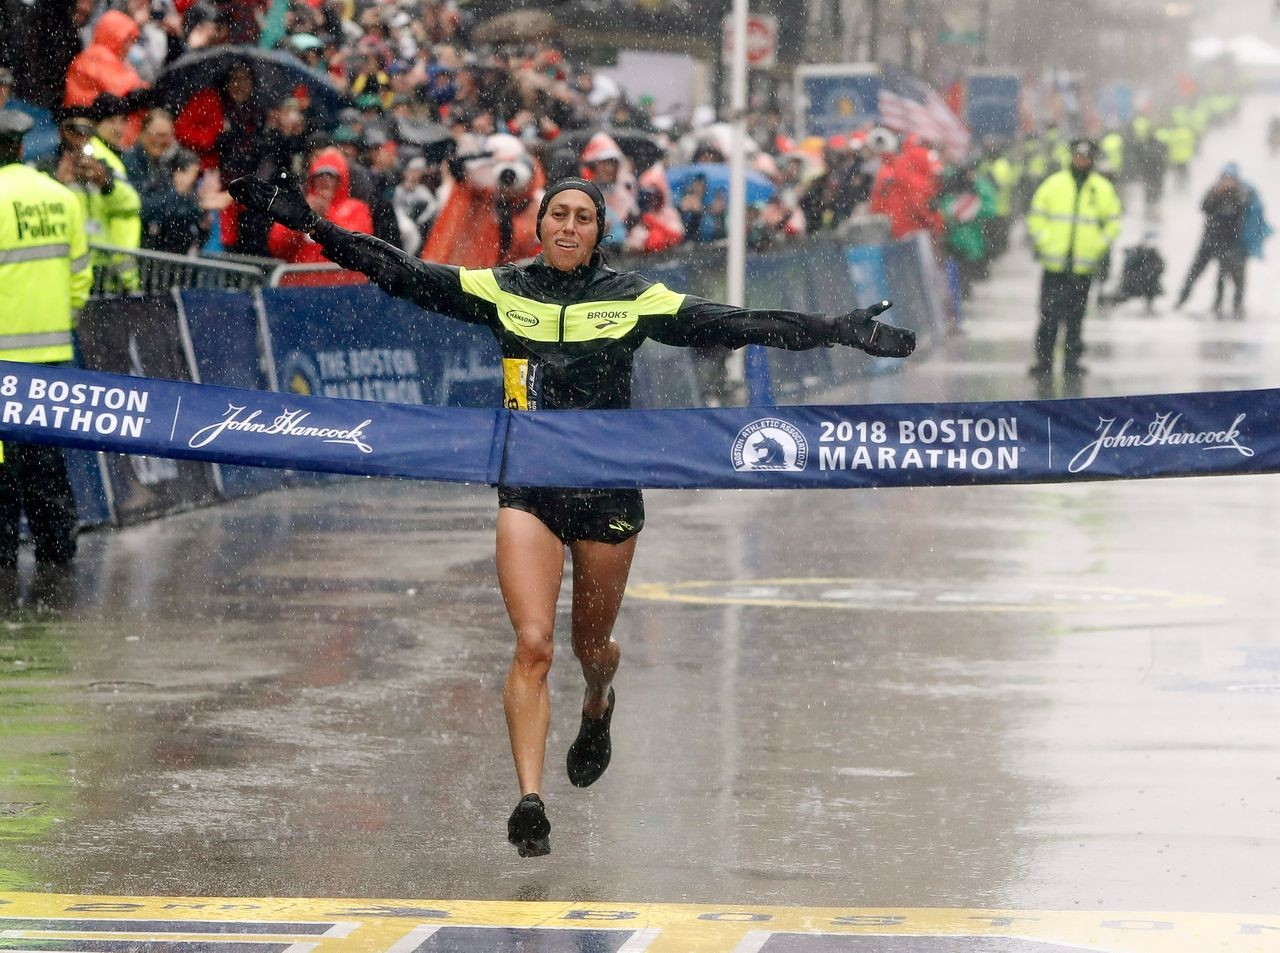 Desiree Linden this year was all alone as she crossed the finish line in Boston unlike in 2011